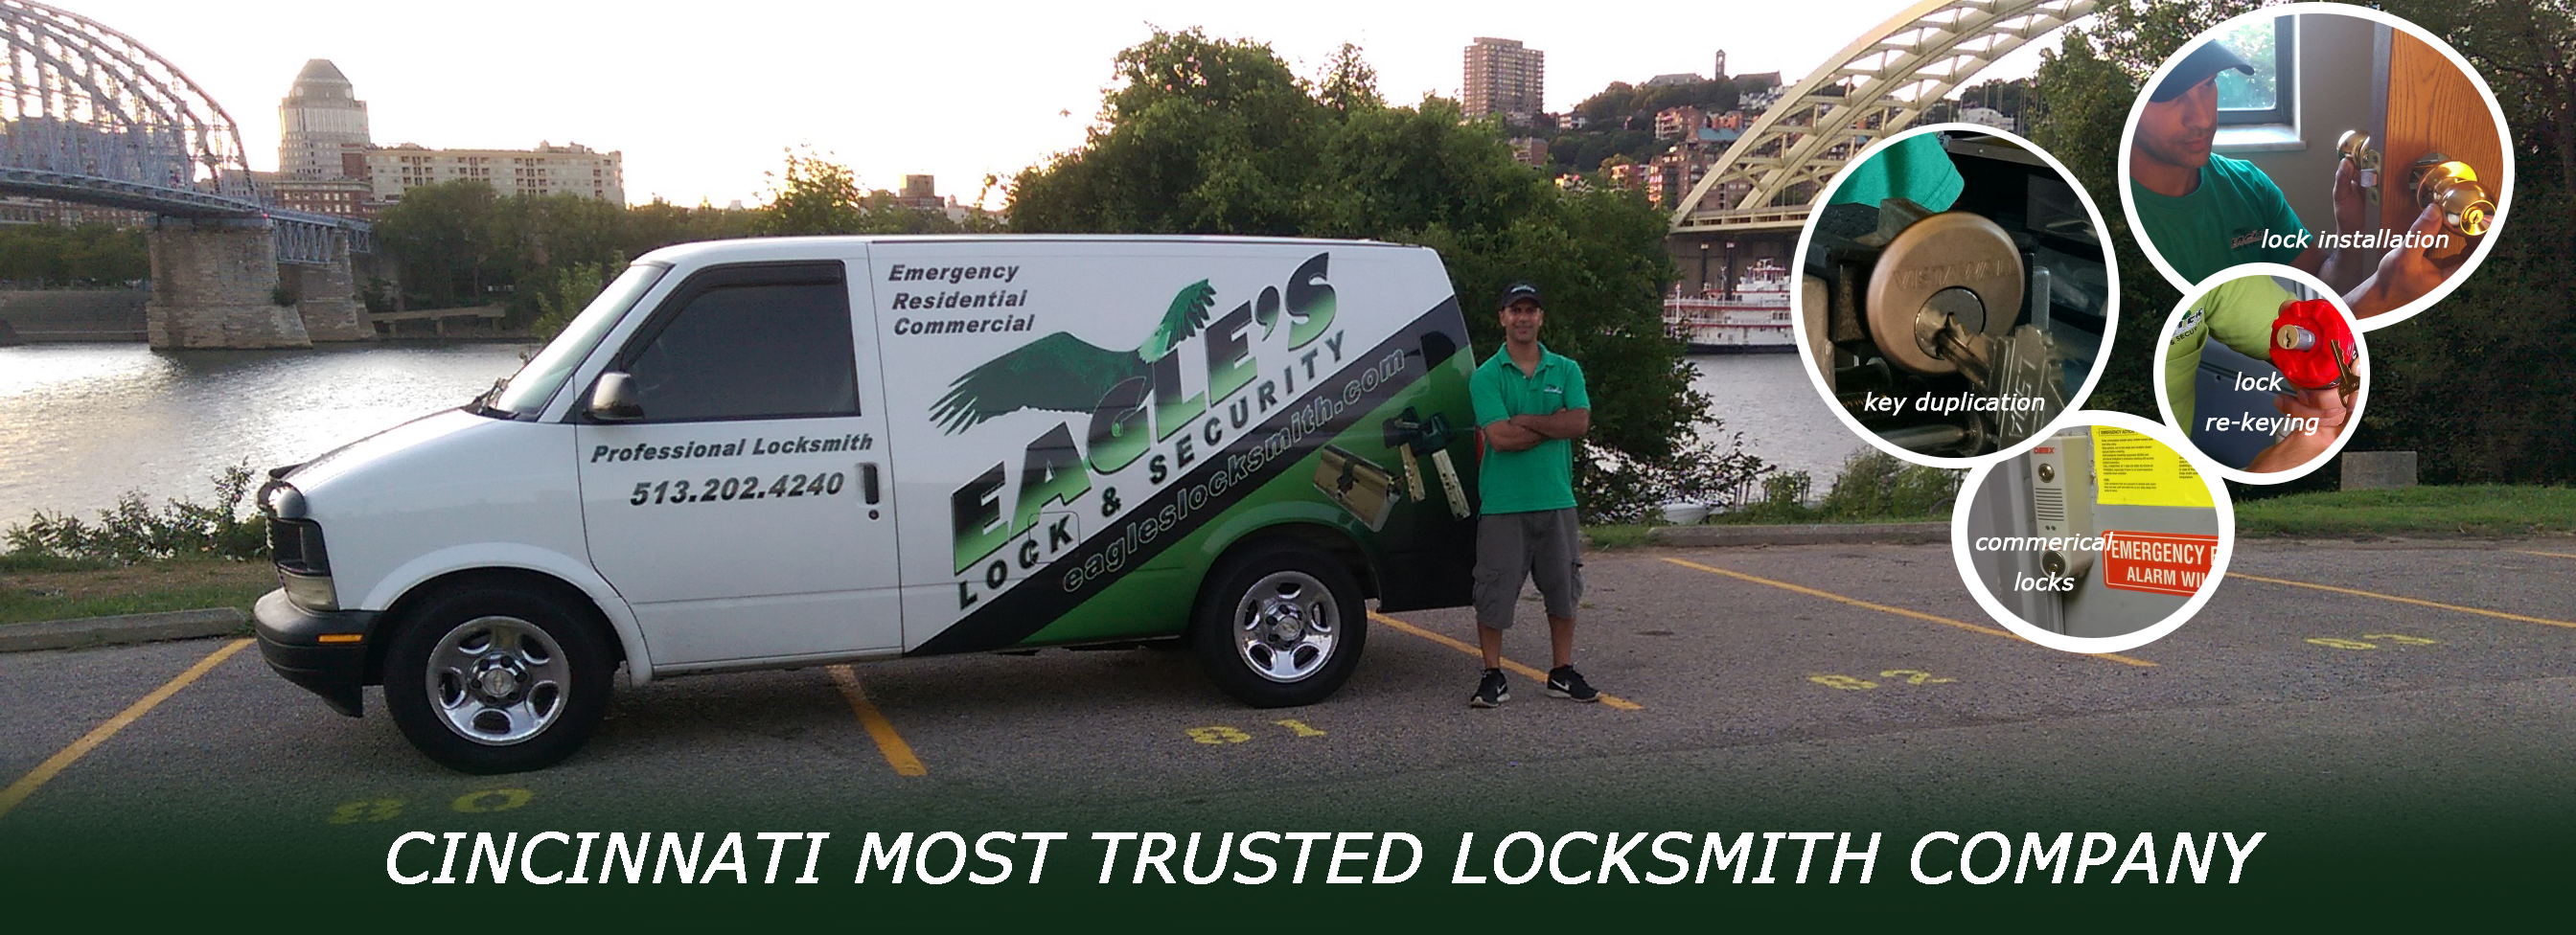 Eagle's Locksmith Cincinnati image 6